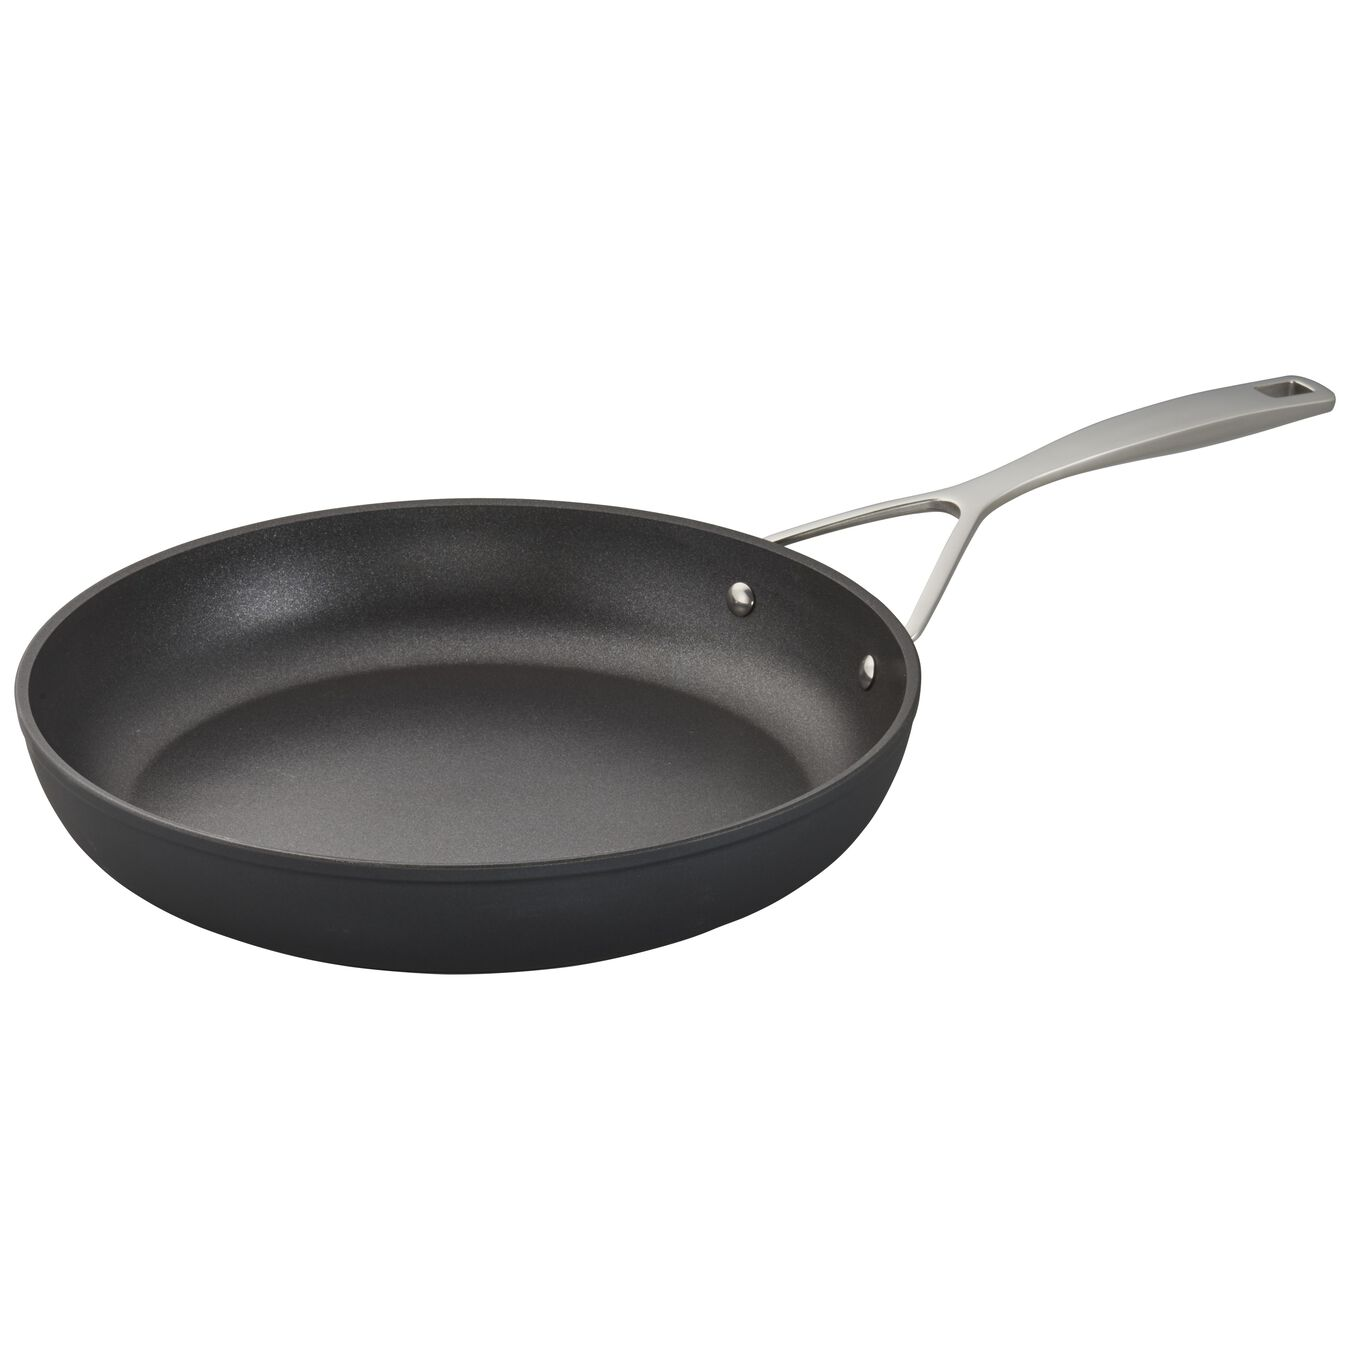 12-inch, Aluminum, Non-stick Frying pan,,large 4